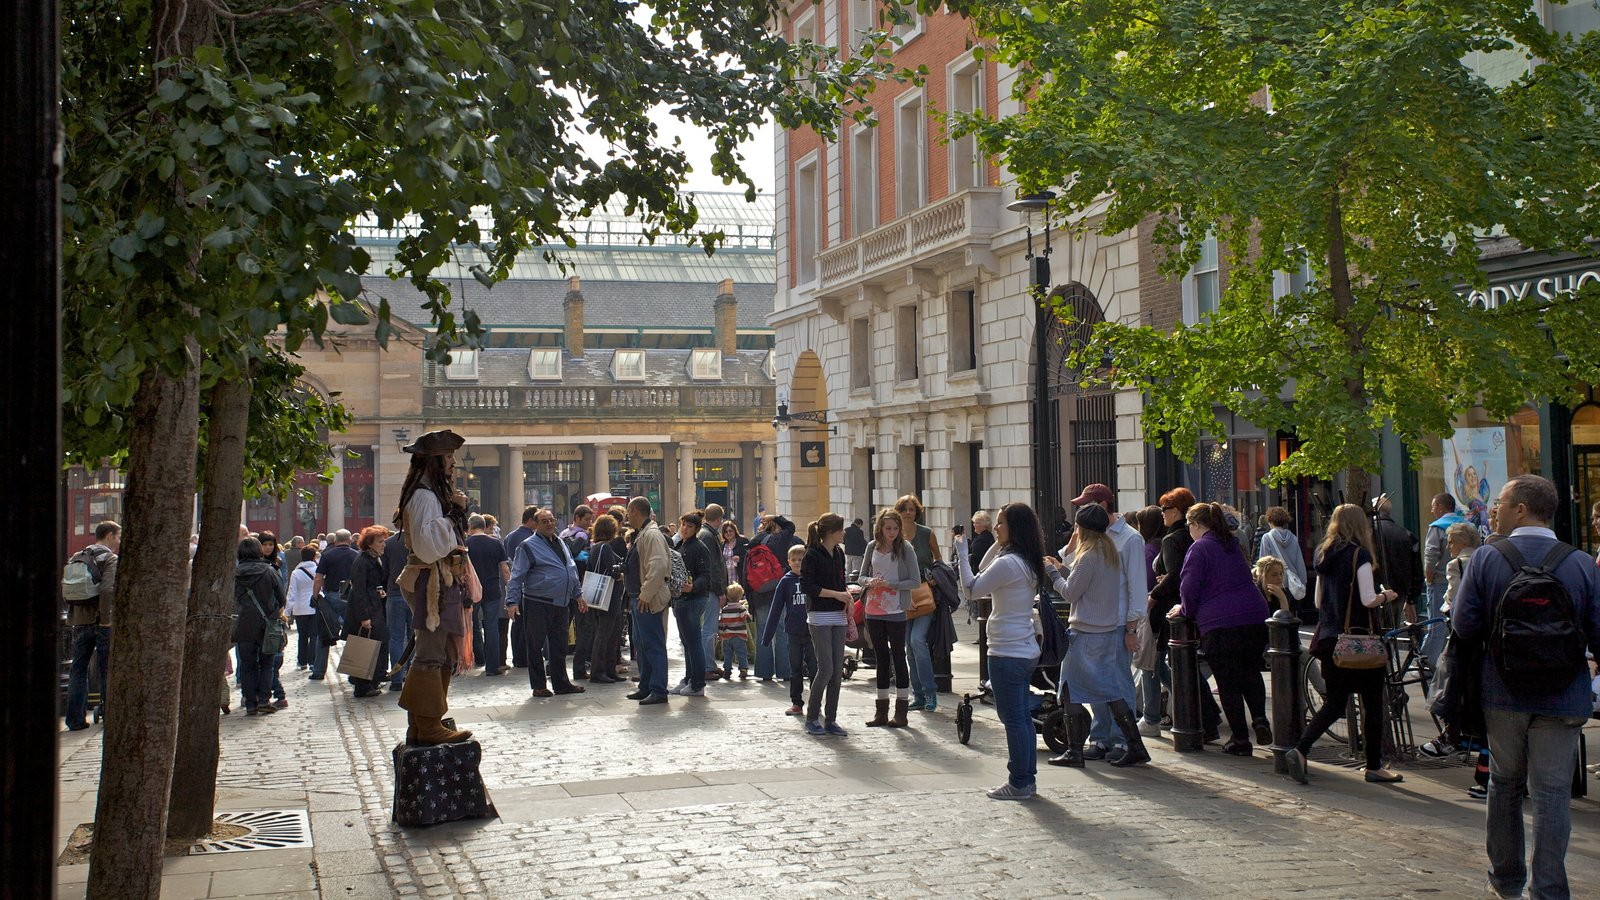 Covent Garden which includes a city and heritage architecture as well as a large group of people